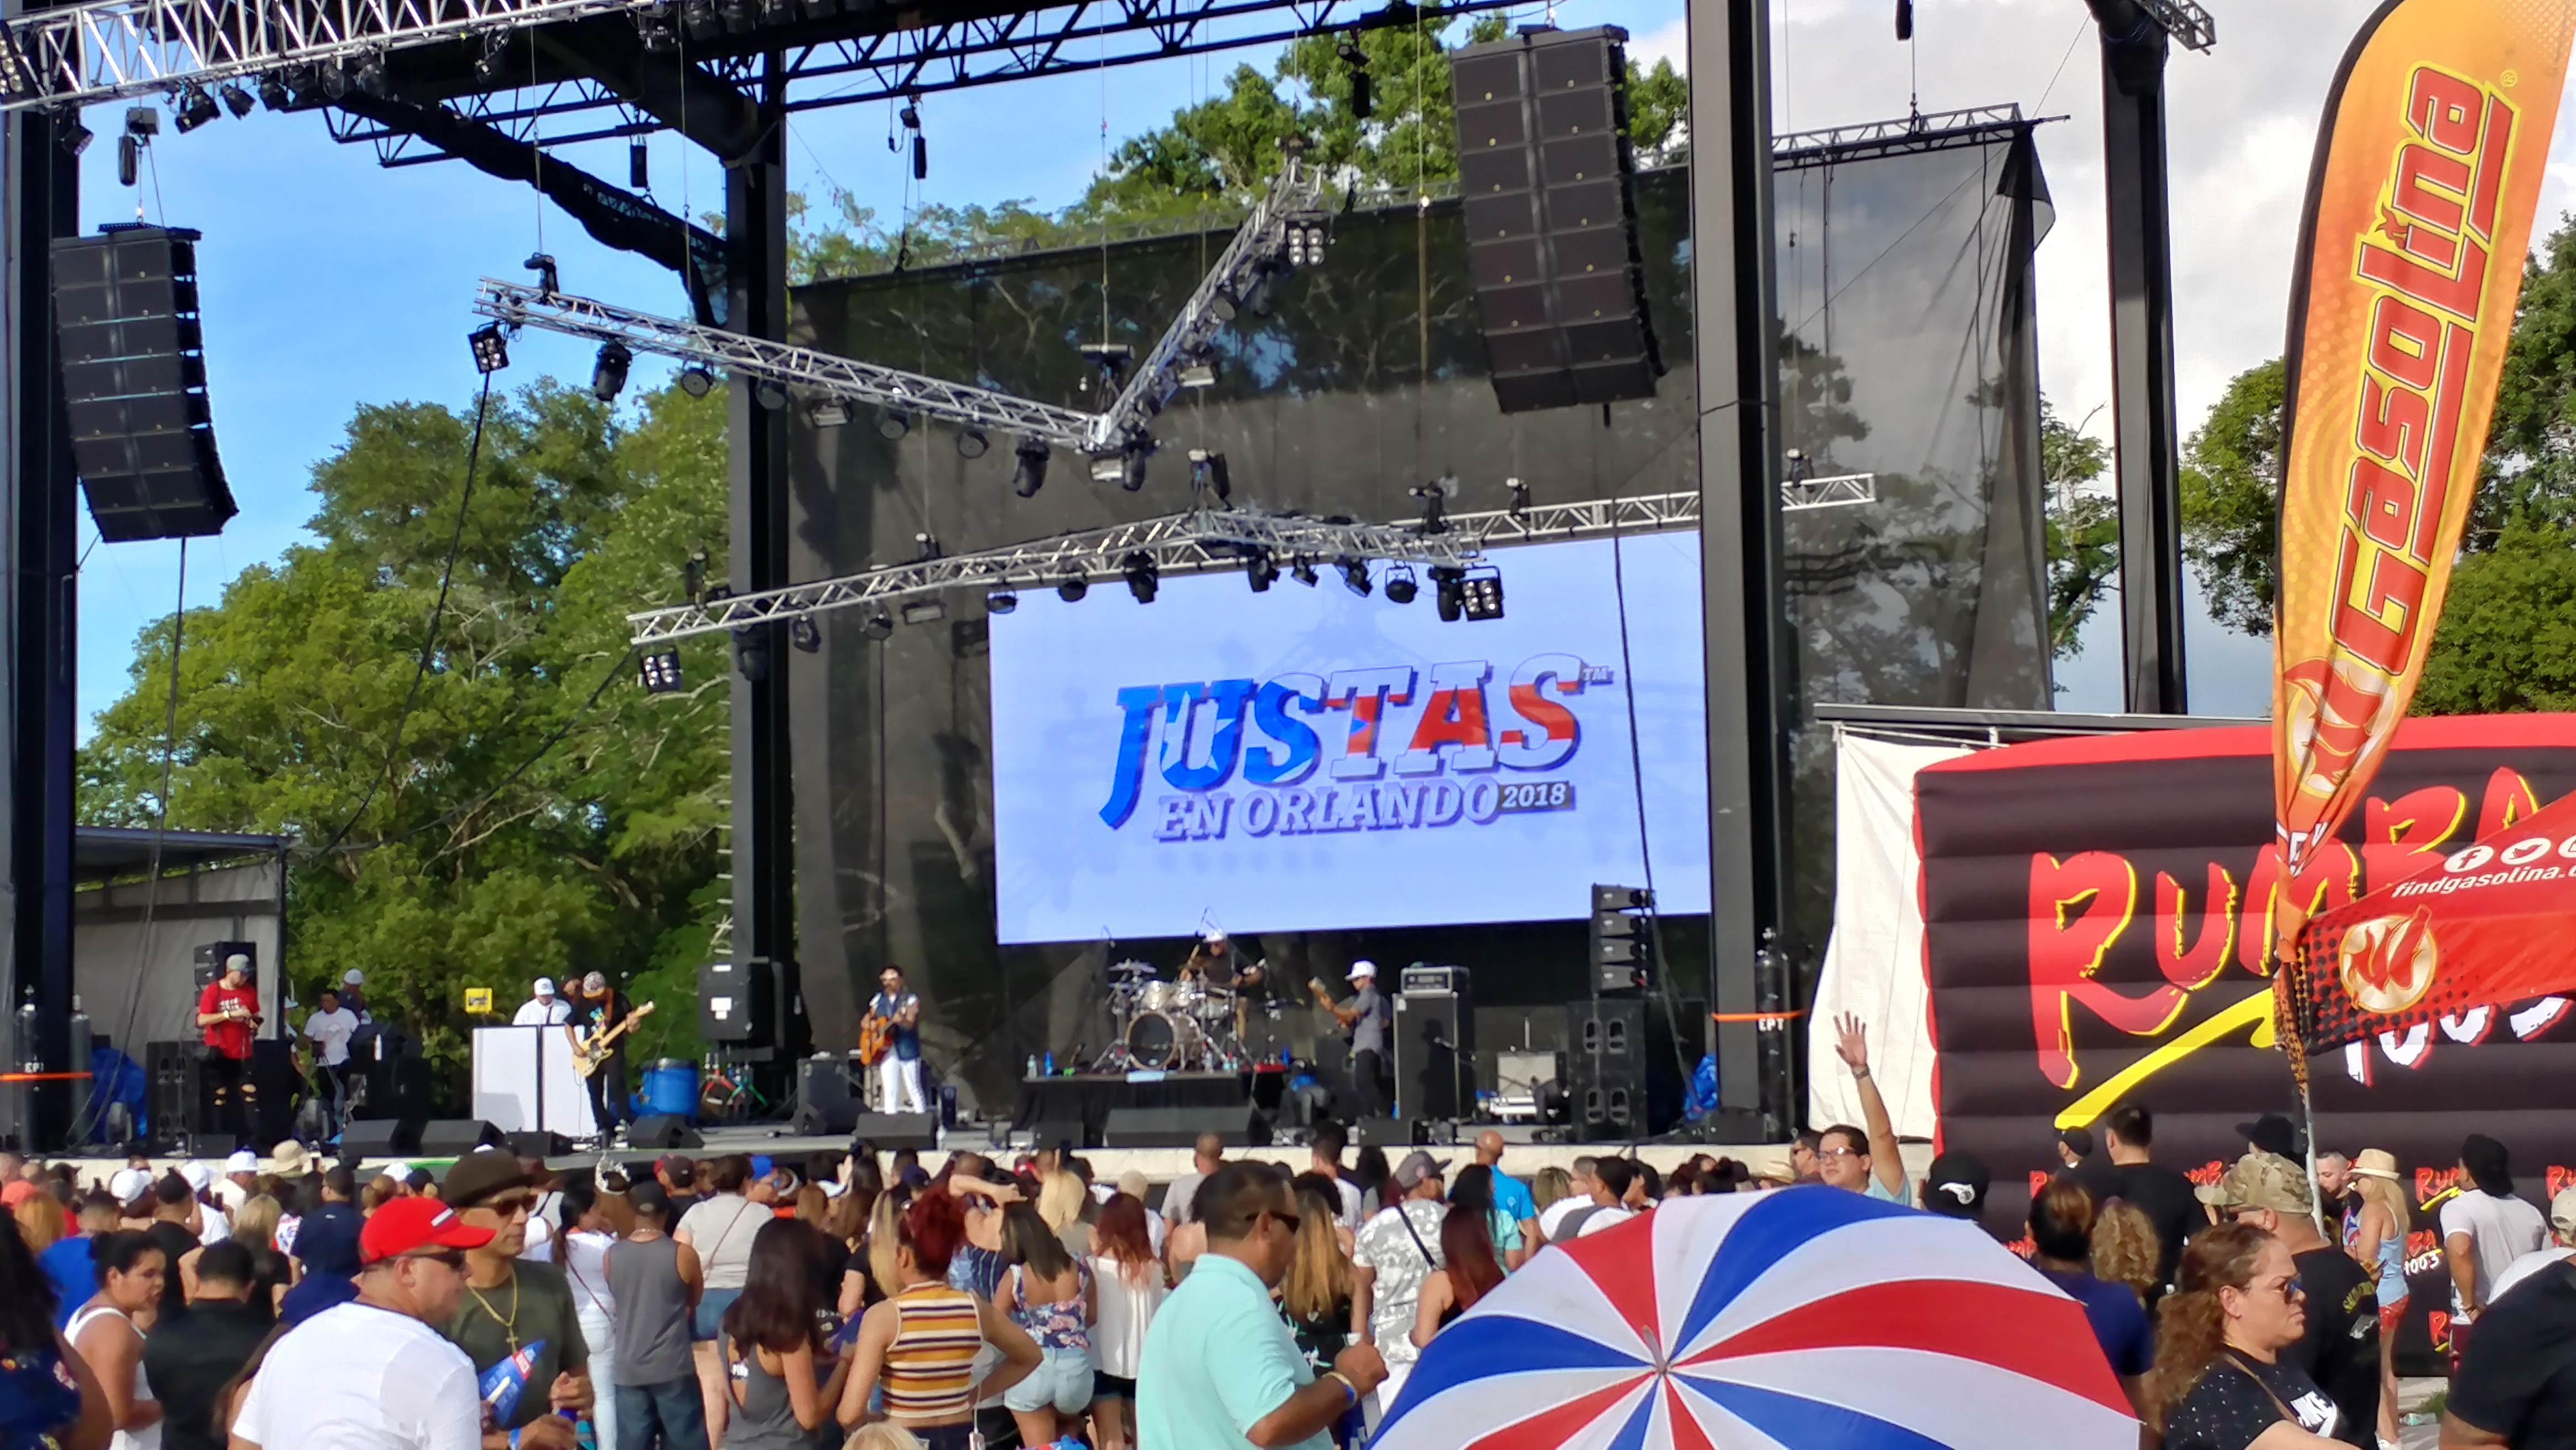 ORLANDO, Fla. (FNN NEWS) - Justas in Orlando 2018, a Boricua tradition where athletes from universities, artists, and others gather in the island of Puerto Rico andOrlando, came to the Central Florida Fairgrounds May 5 and 6, 2018 and will return on June 24. Photo: Aixa Torres/Florida National News.